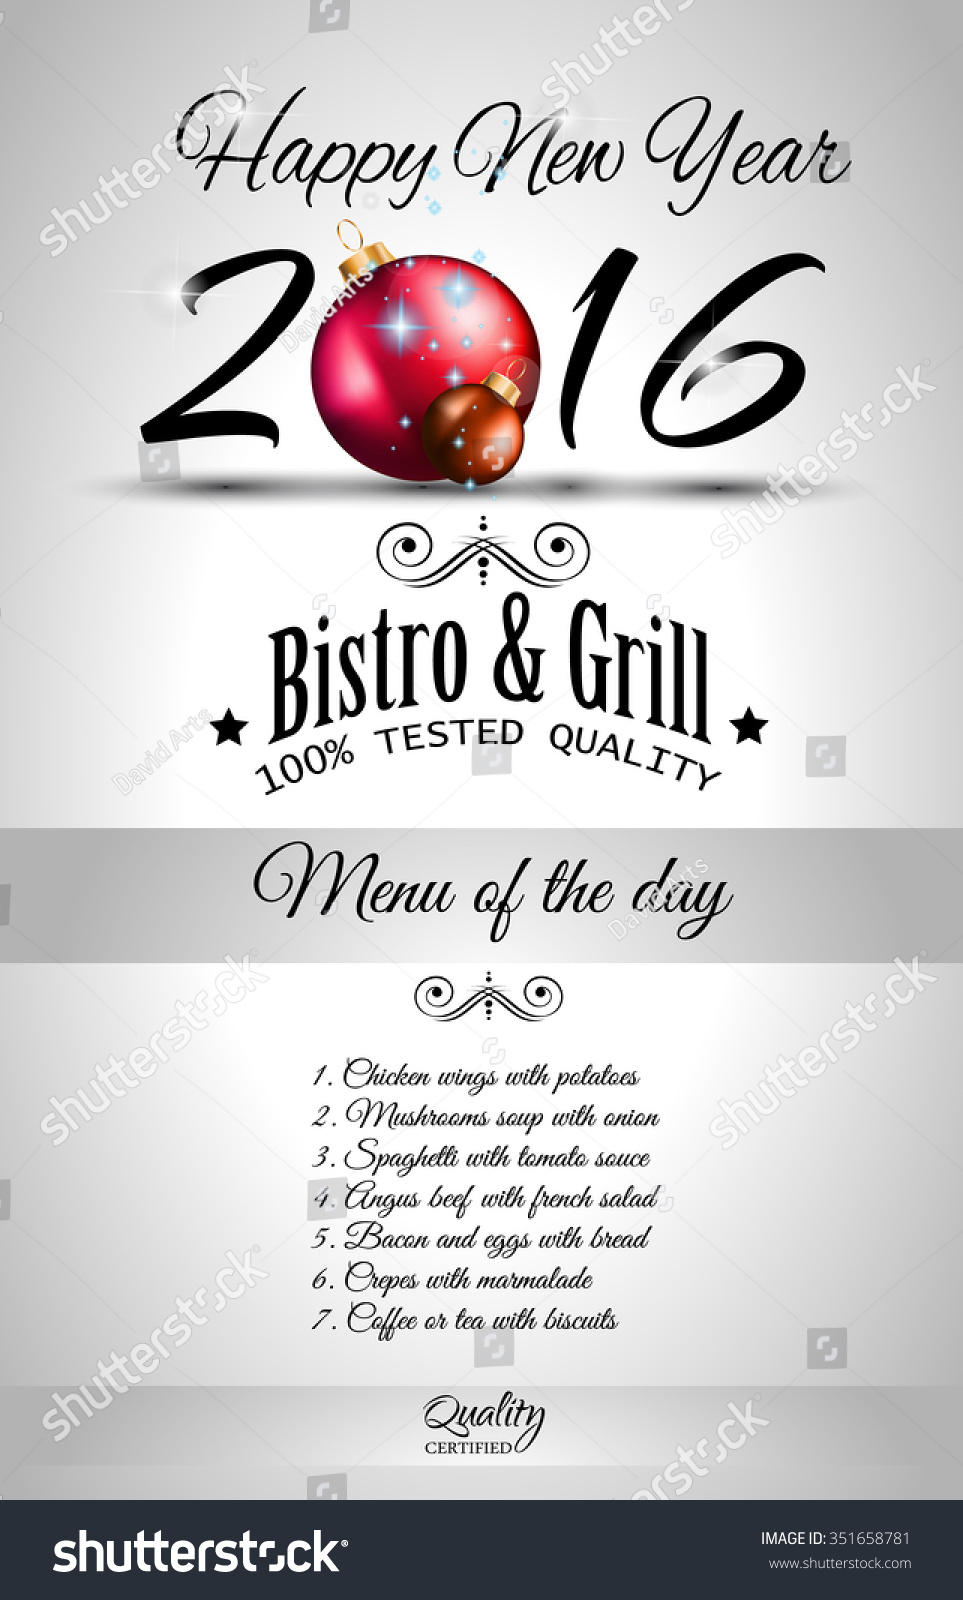 2016 happy new year restaurant menu stock vector royalty free